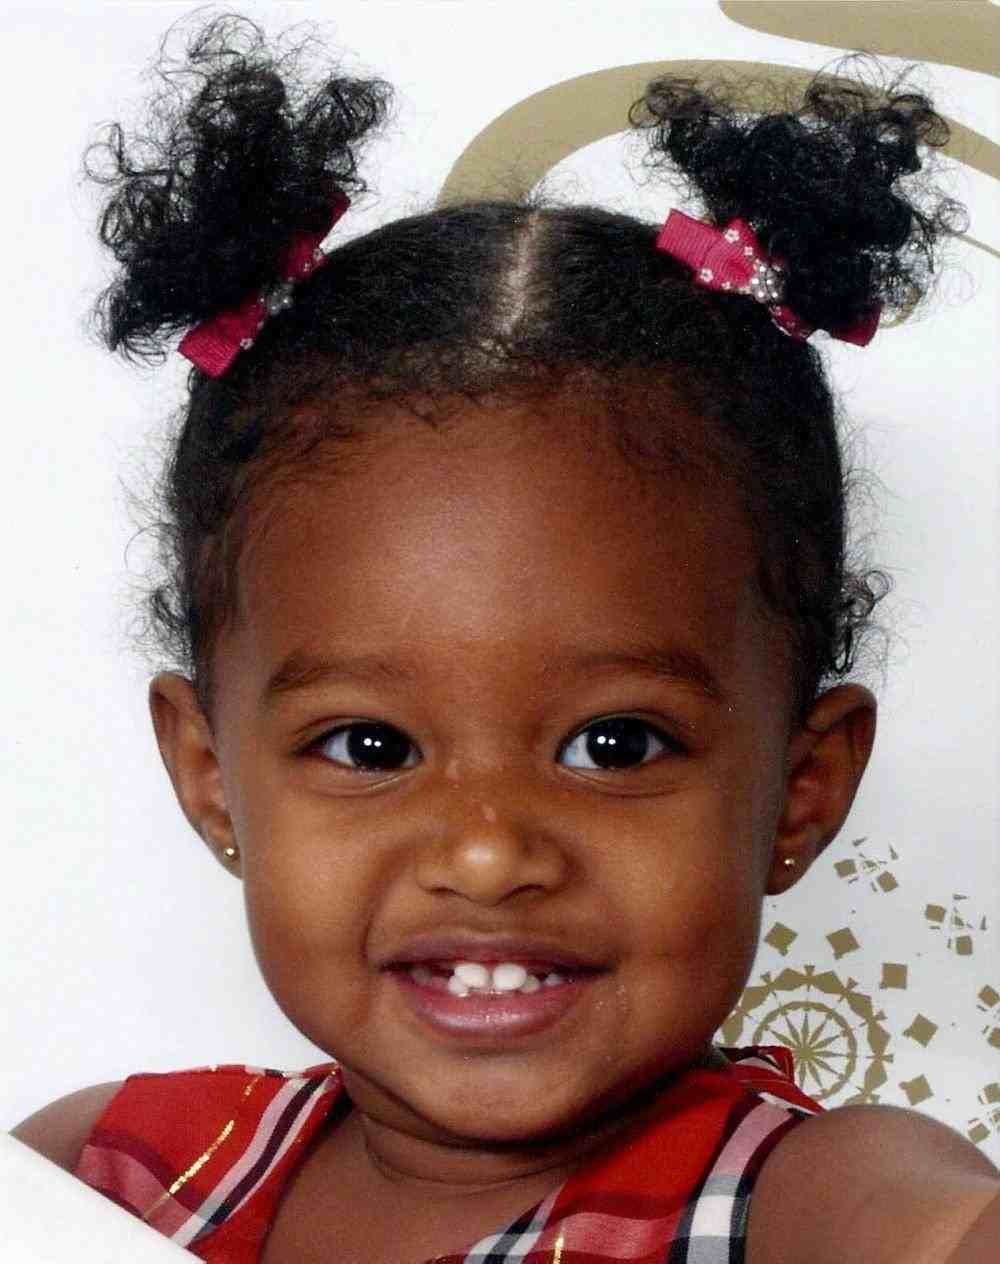 Balayagehair Club Nbspthis Website Is For Sale Nbspbalayagehair Resources And Information Baby Hairstyles Black Kids Hairstyles Black Baby Girls